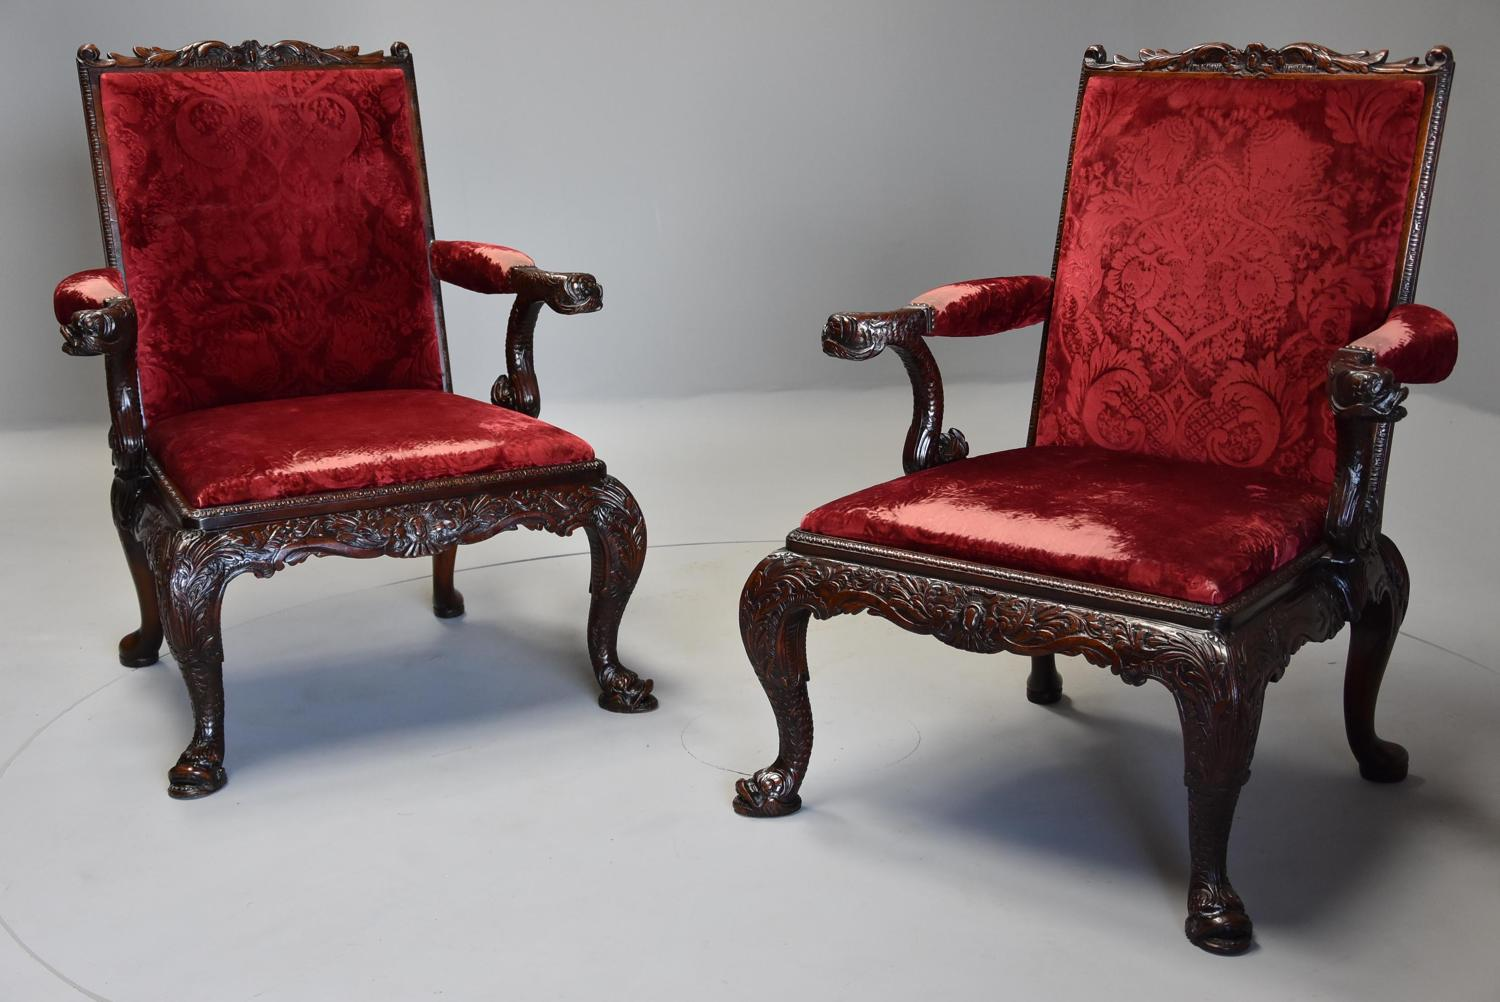 Superb pair of George II style mahogany Gainsborough armchairs